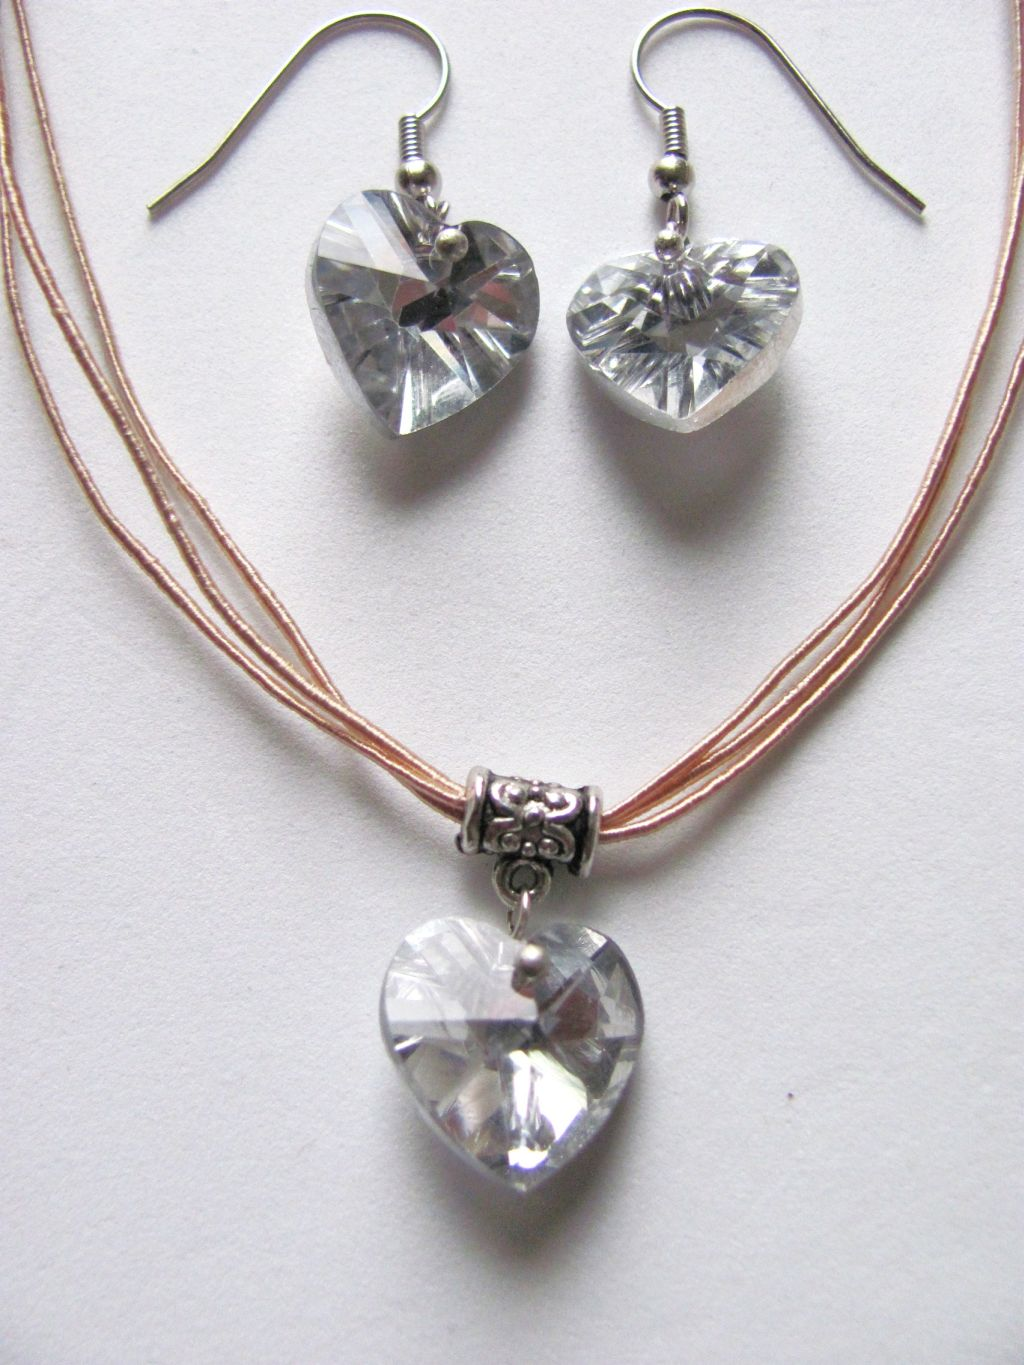 Clear Genuine Crystal Heart Charm Beige Necklace Earrings Set